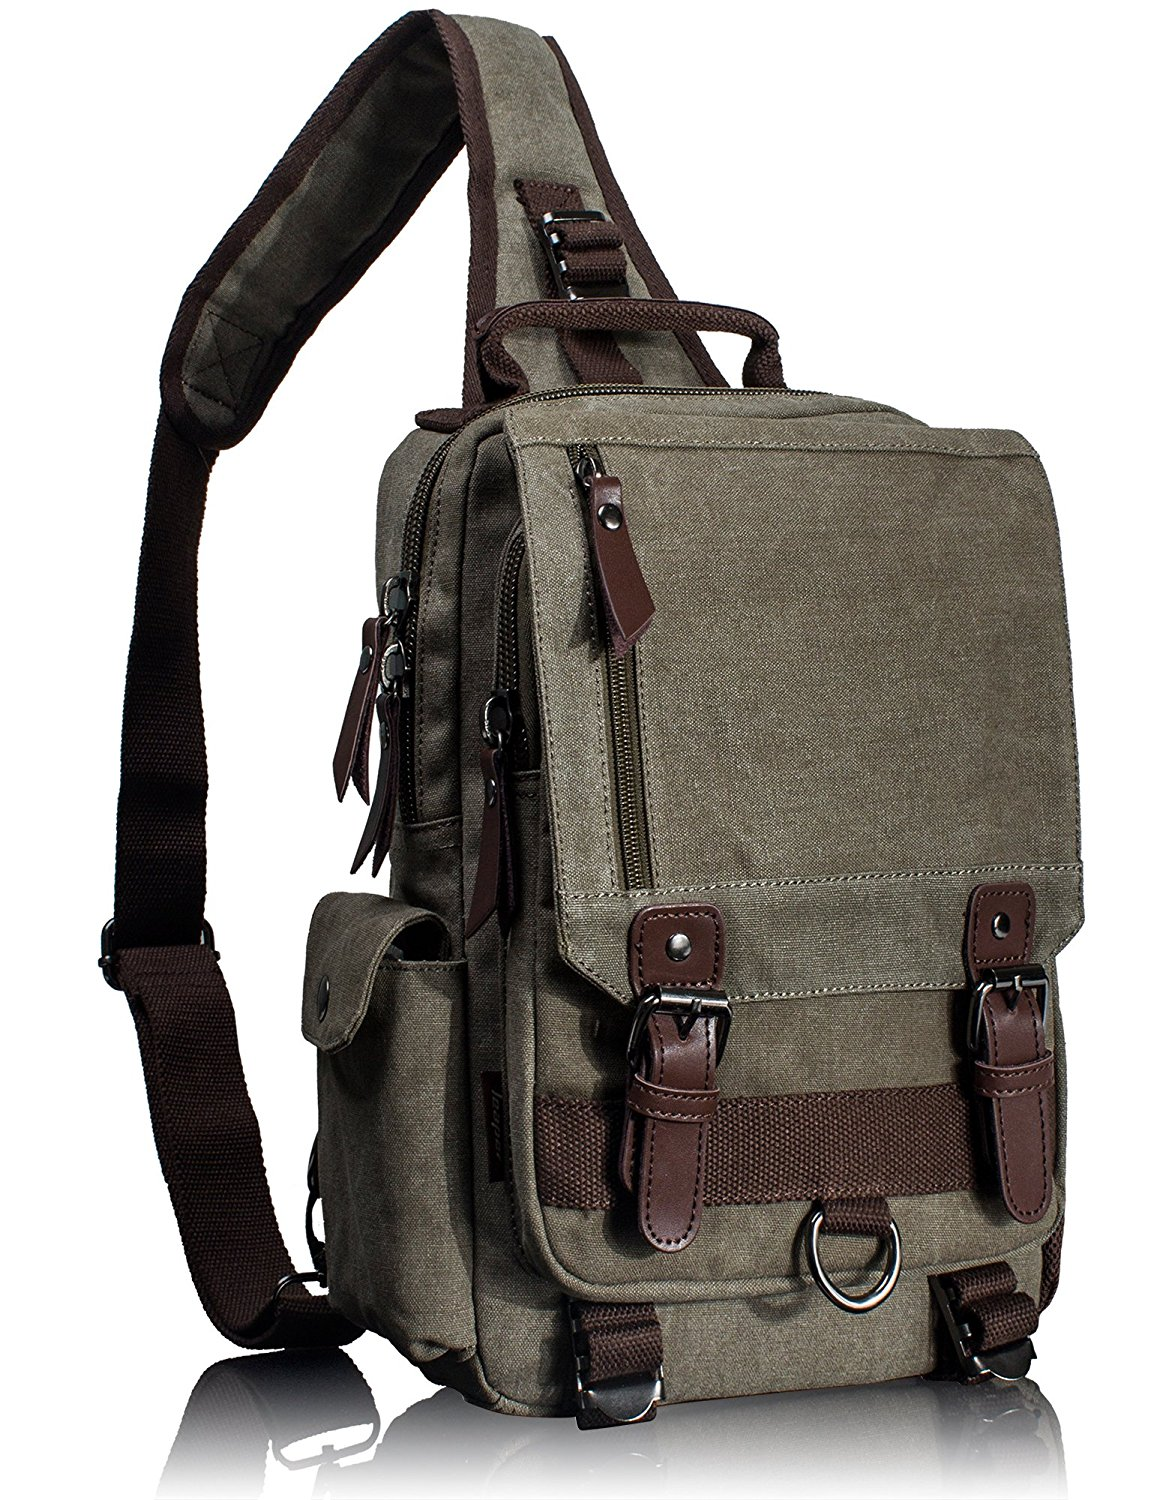 d2d4faeae37c Get Quotations · Leaper Cross Body Messenger Bag Shoulder Backpack Travel  Rucksack Sling Bag